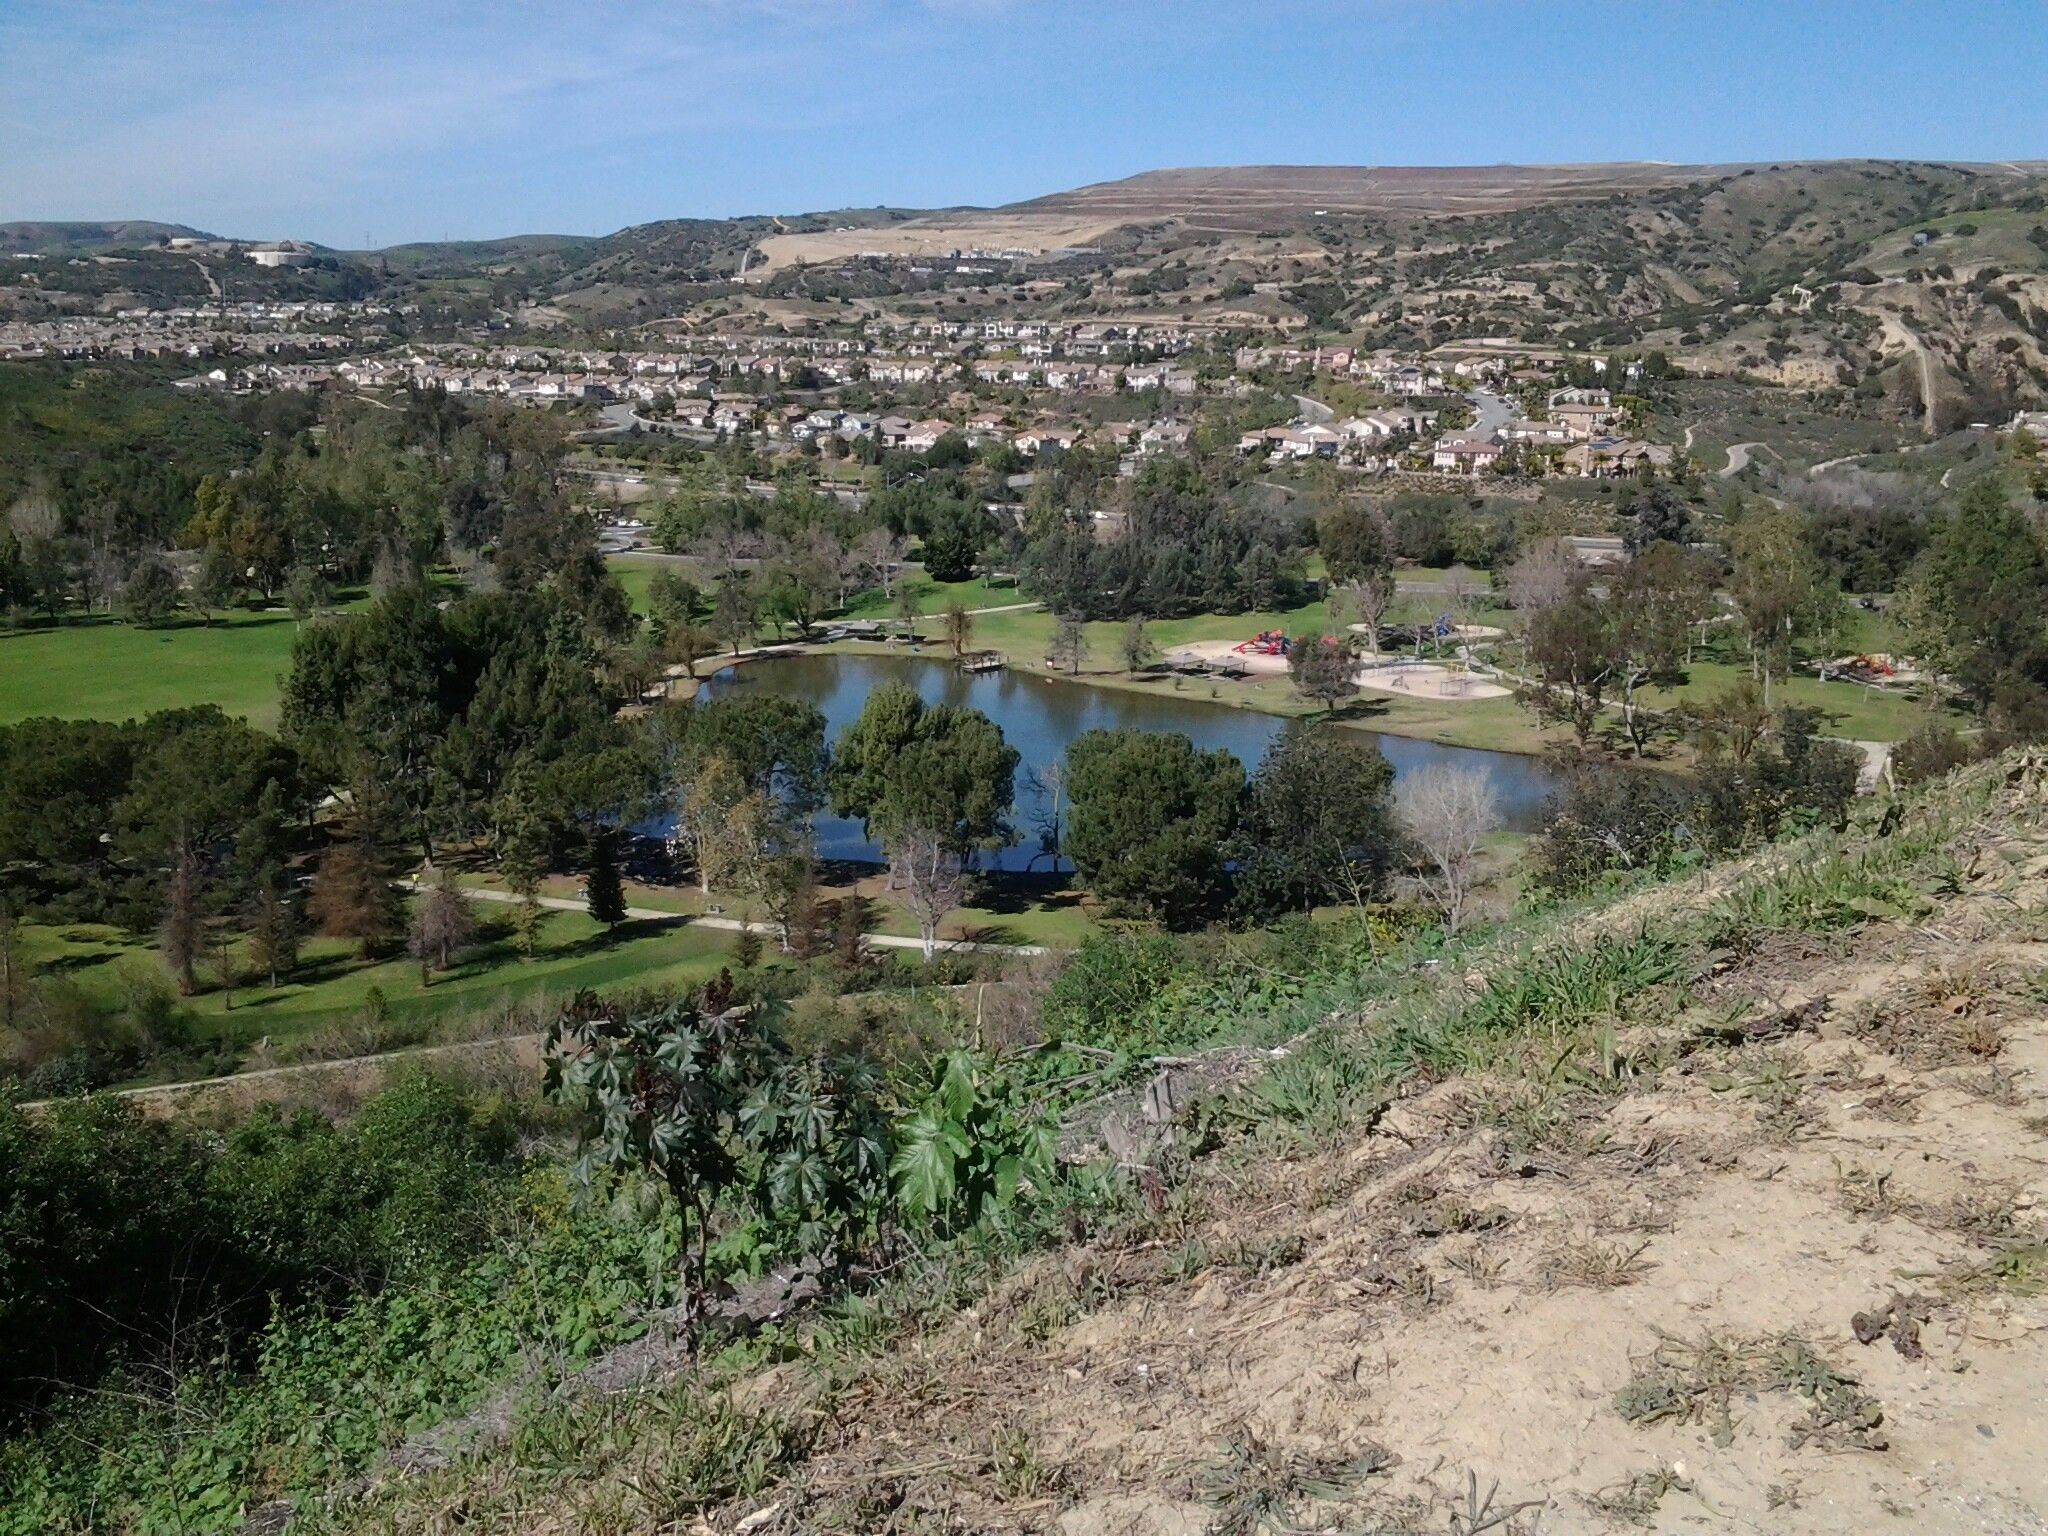 Carbon Canyon Nature Trail Might Be One Of The Most Beautiful Short-And-Sweet Hikes To Take In Southern California